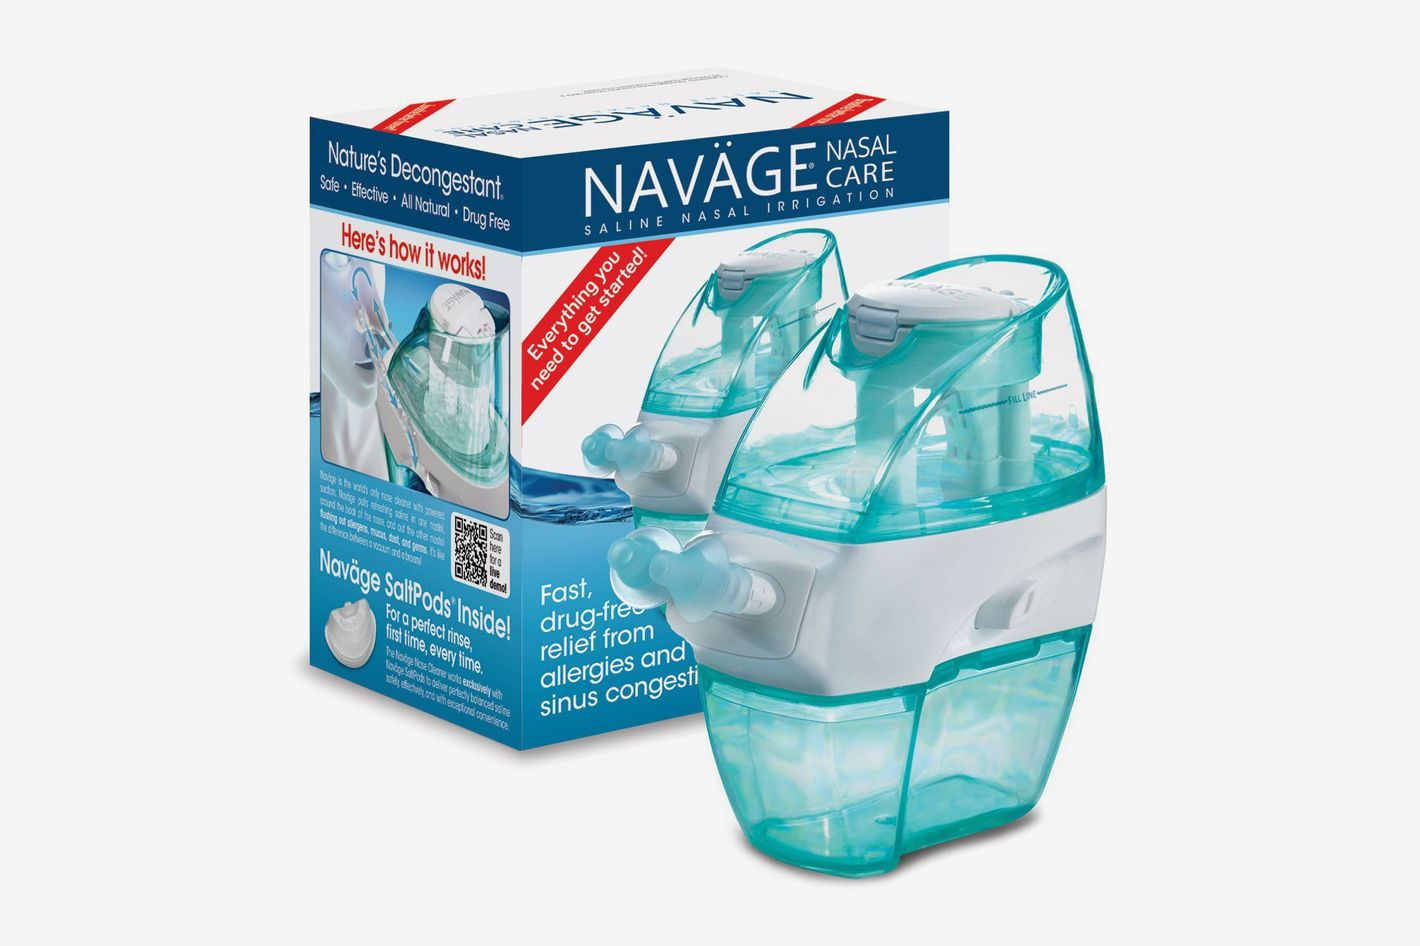 7 Best Neti Pots and Sinus Rinse Kits for Allergies 2019